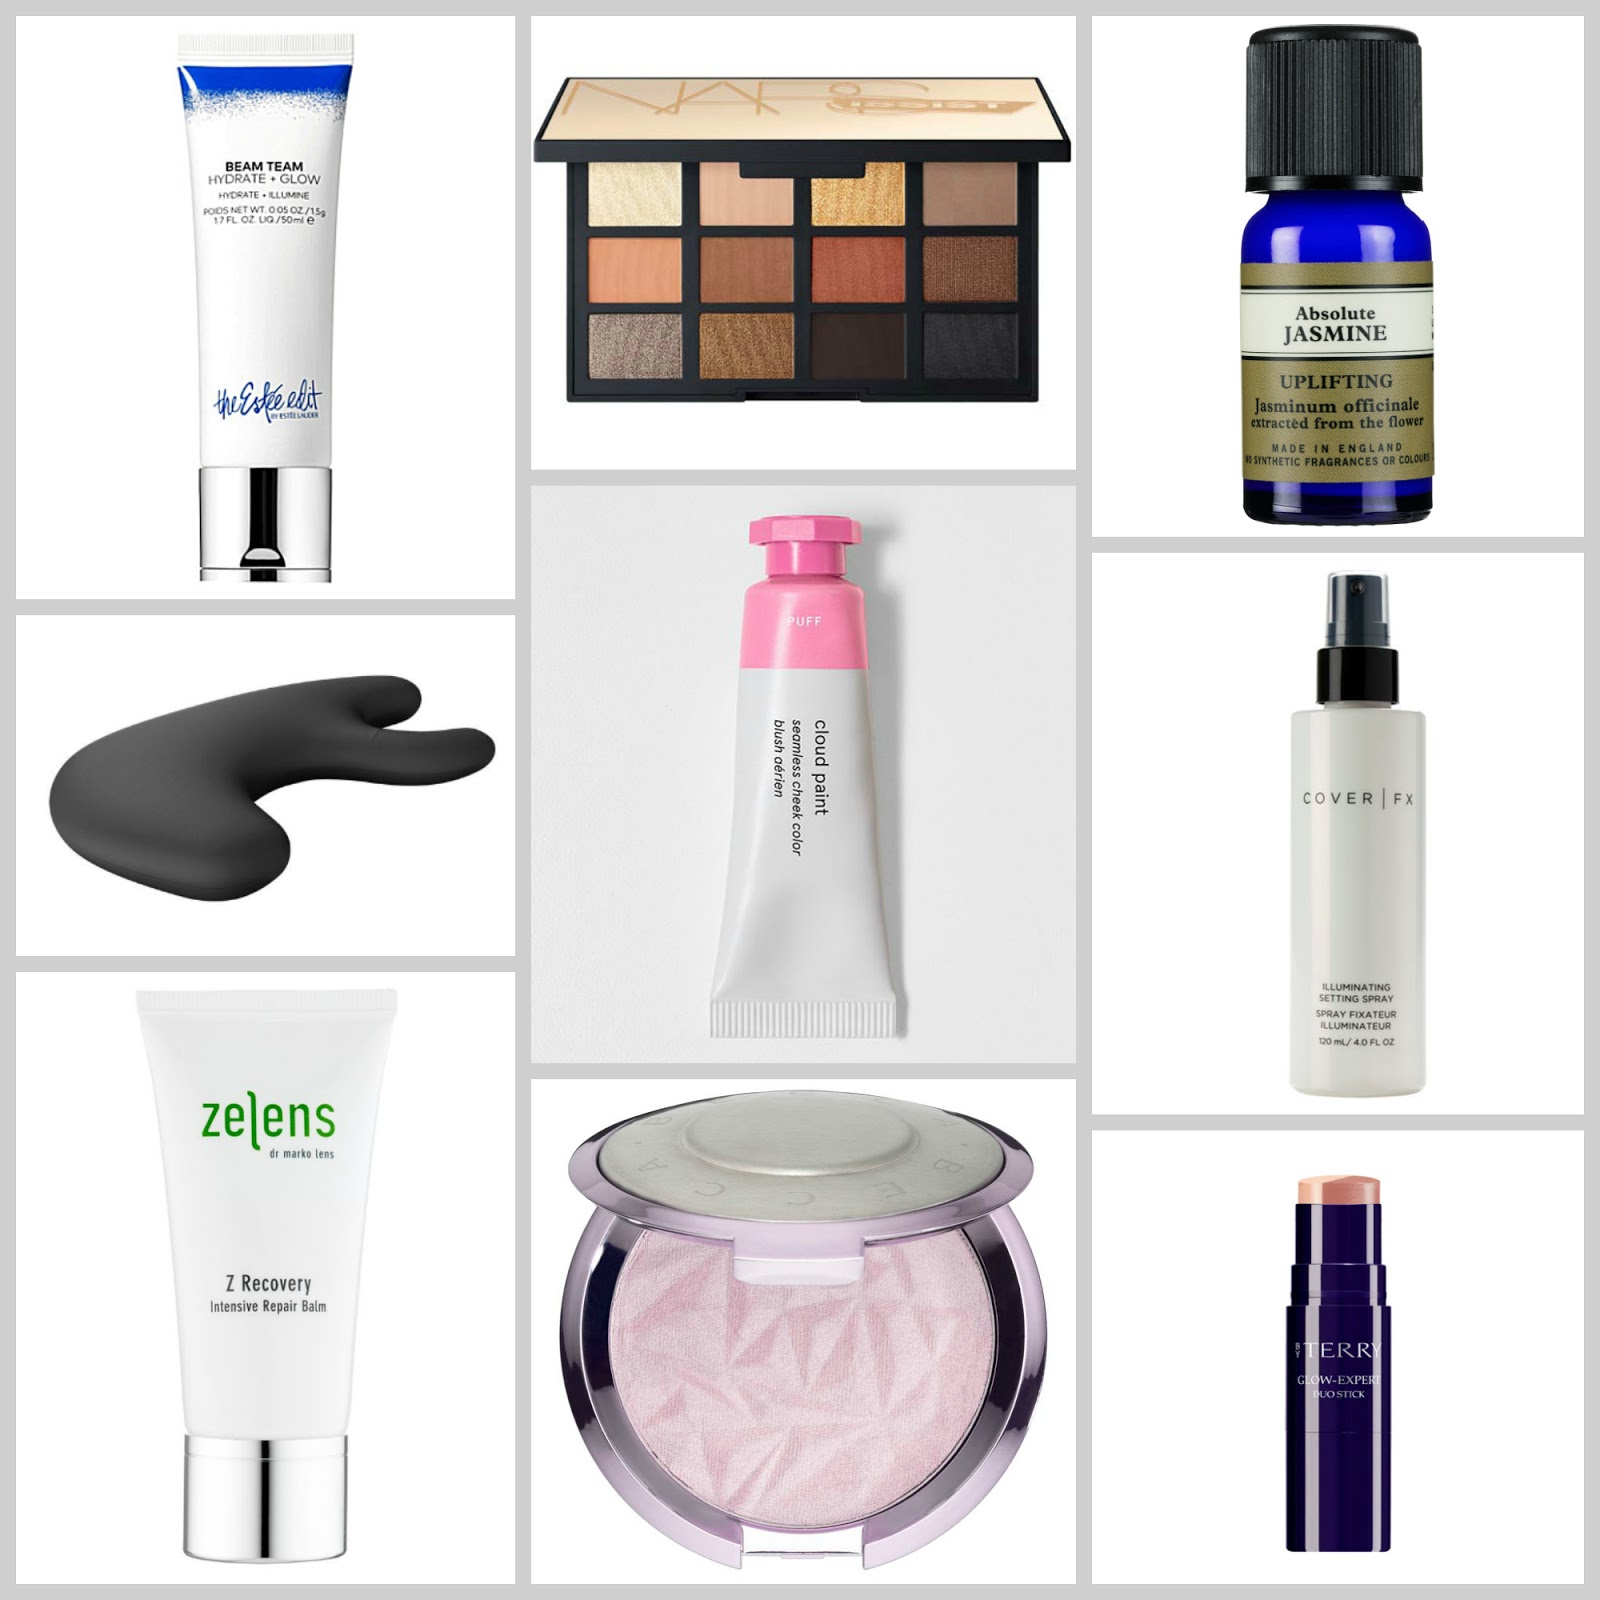 spring beauty wishlist the estee edit beam team nars loaded eyeshadow palette becca prismatic amethyst highlight glossier cloud paints cover fx illuminating setting spray by terry glow expert duo sticks nurse jamie pillow helens z recovery repair balm neal's yard essential oils reviews